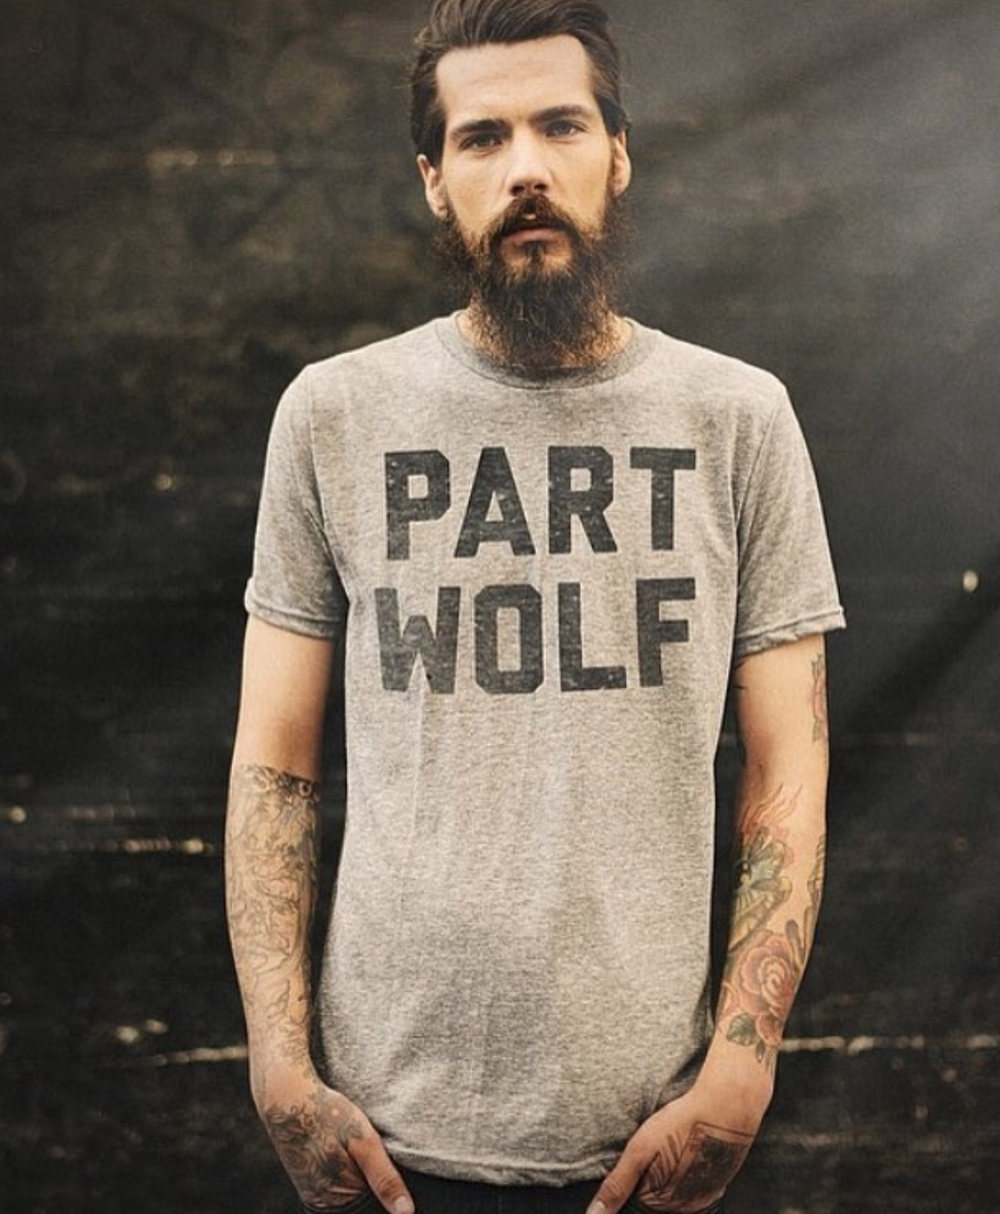 Part Wolf Tee and Lifestyle Photography